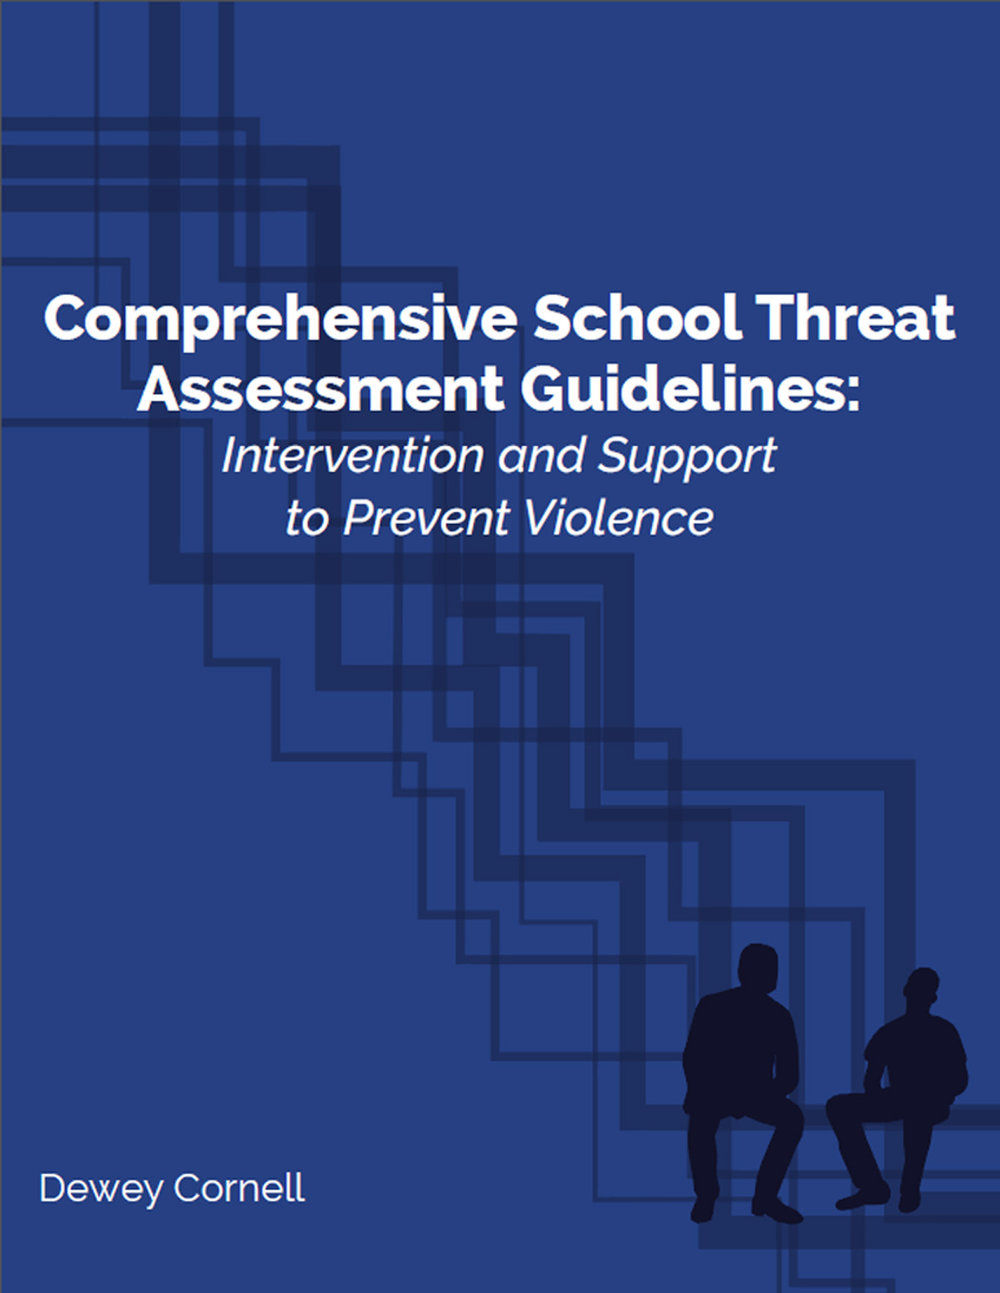 Our 2018 threat assessment manual replaces the original 2006 manual, Guidelines for Responding to Student Threats of Violence